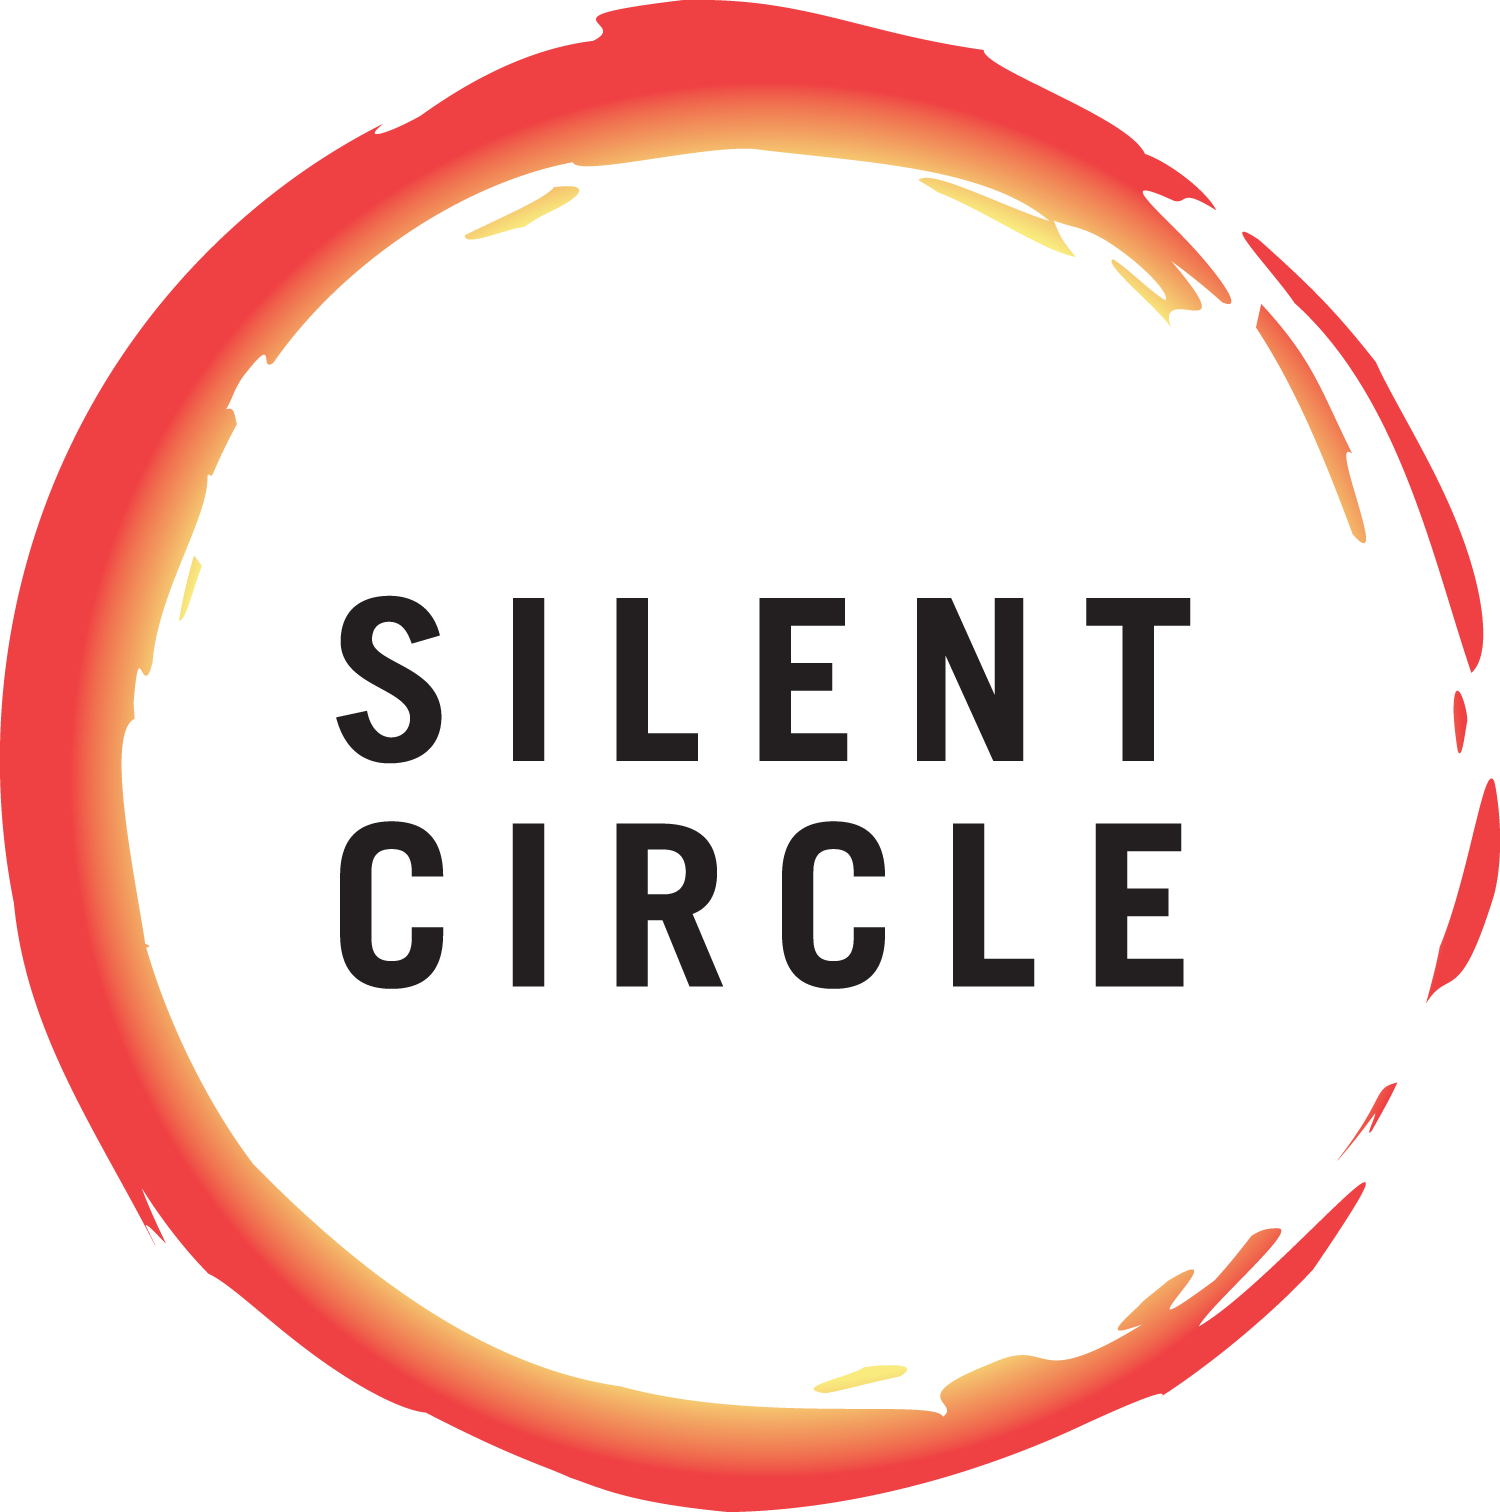 Logo circle png. Images in collection page